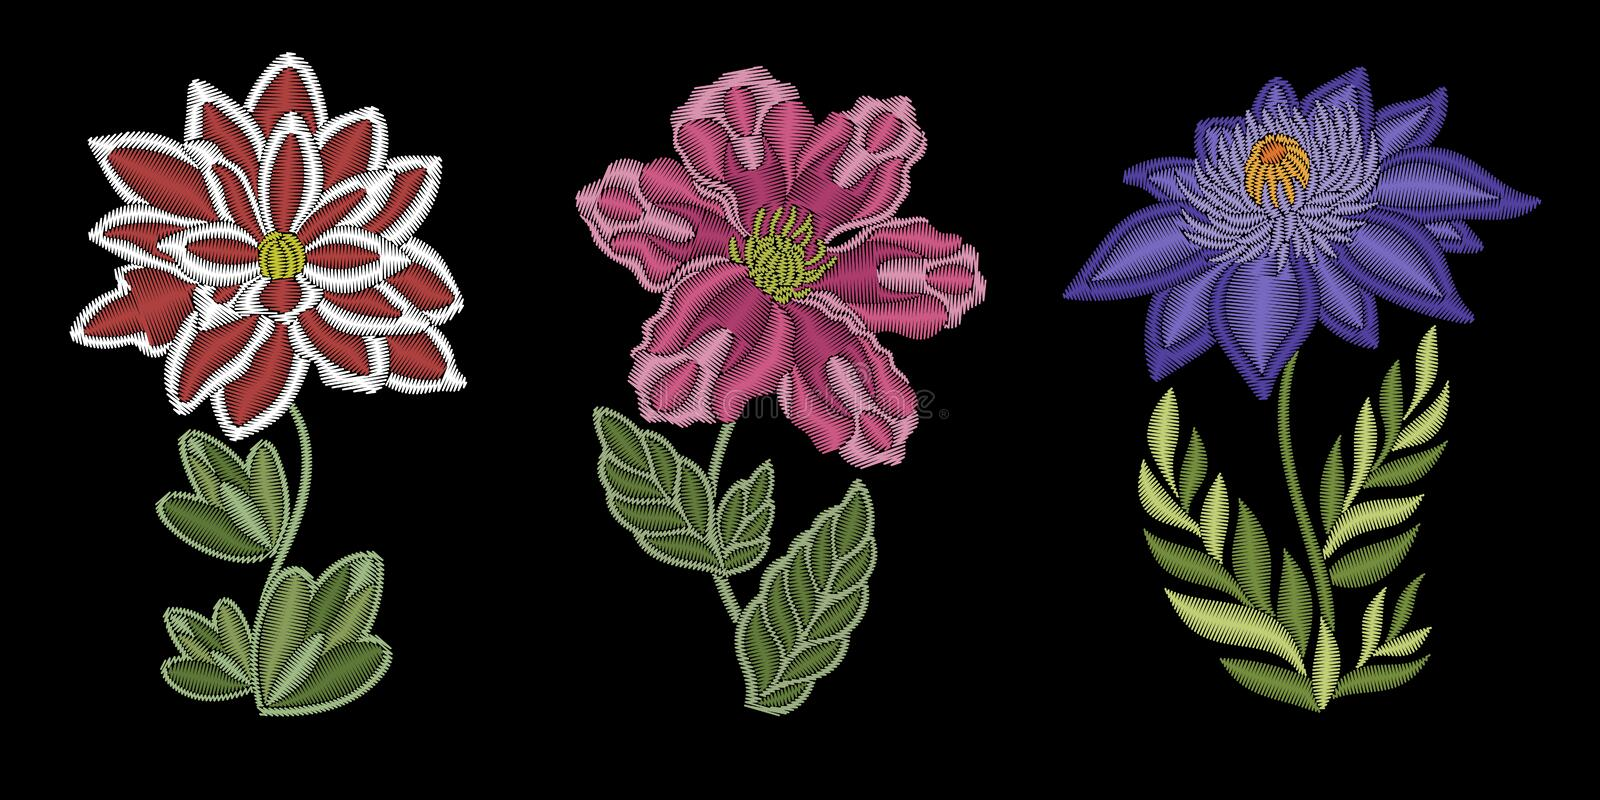 Embroidery floral fashion design royalty free stock image